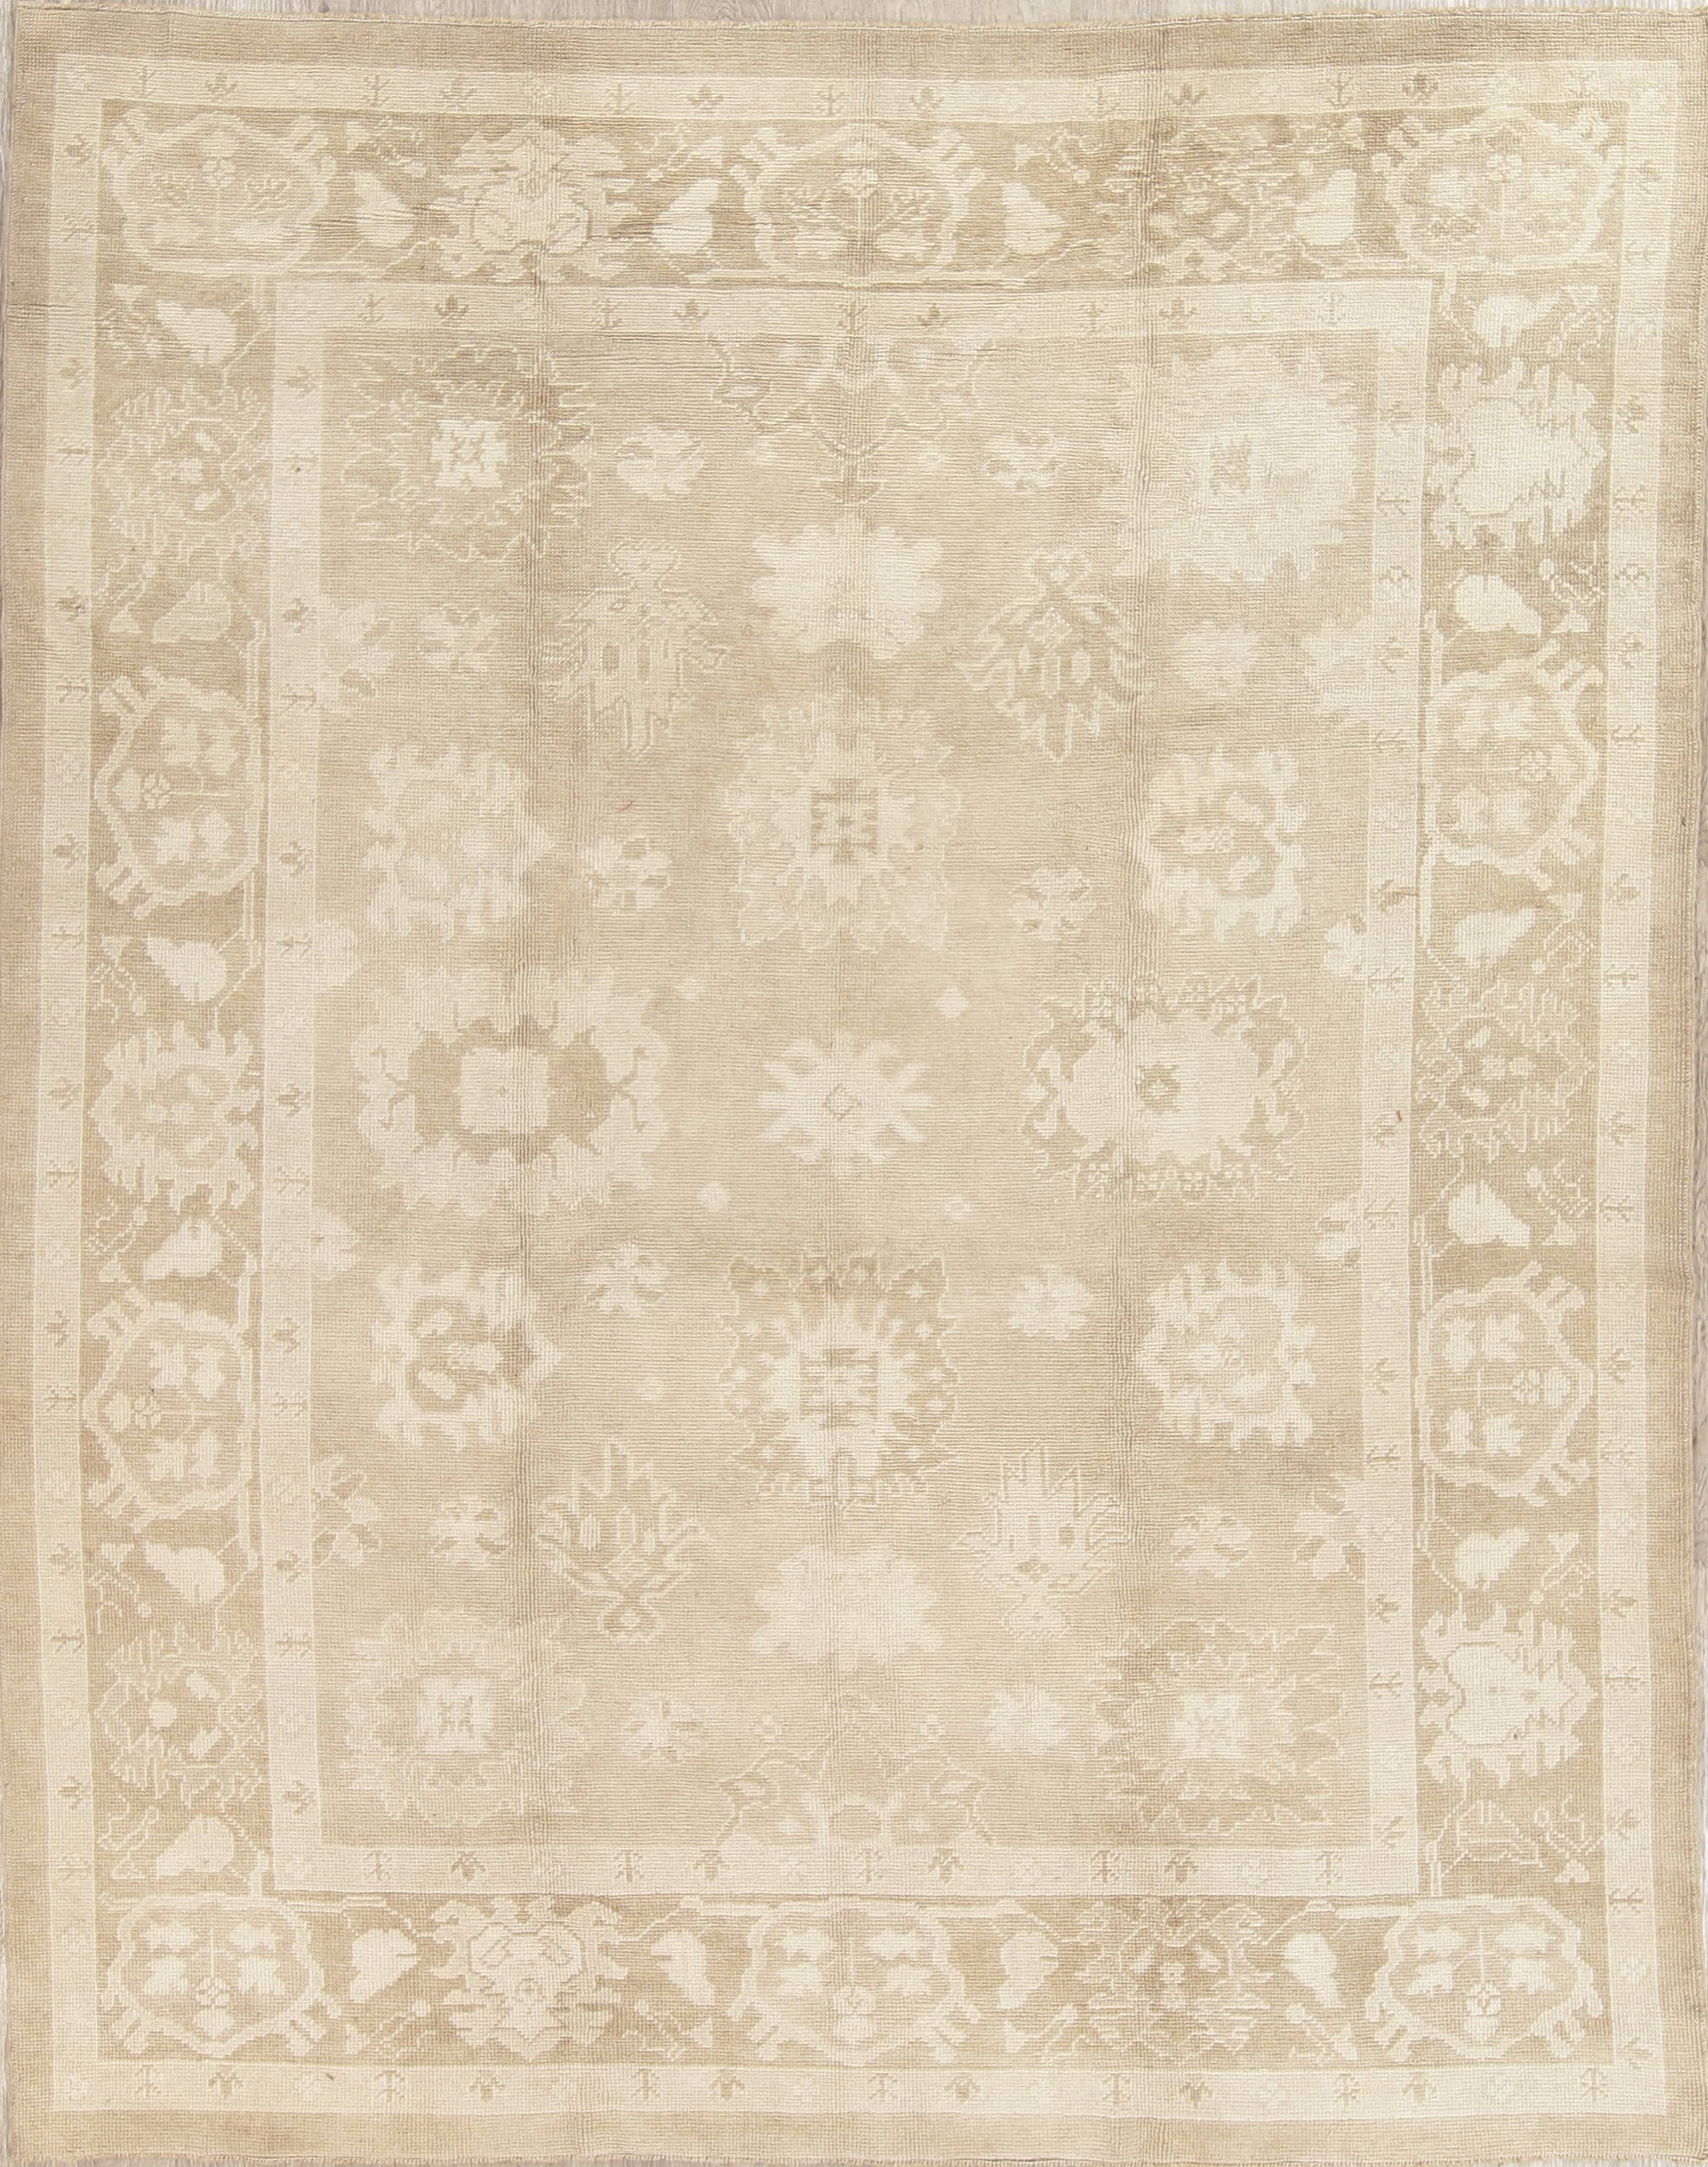 Vegetable Dye One-Of-a-Kind Oushak Turkish Hand-Knotted 8x10 Area Rug